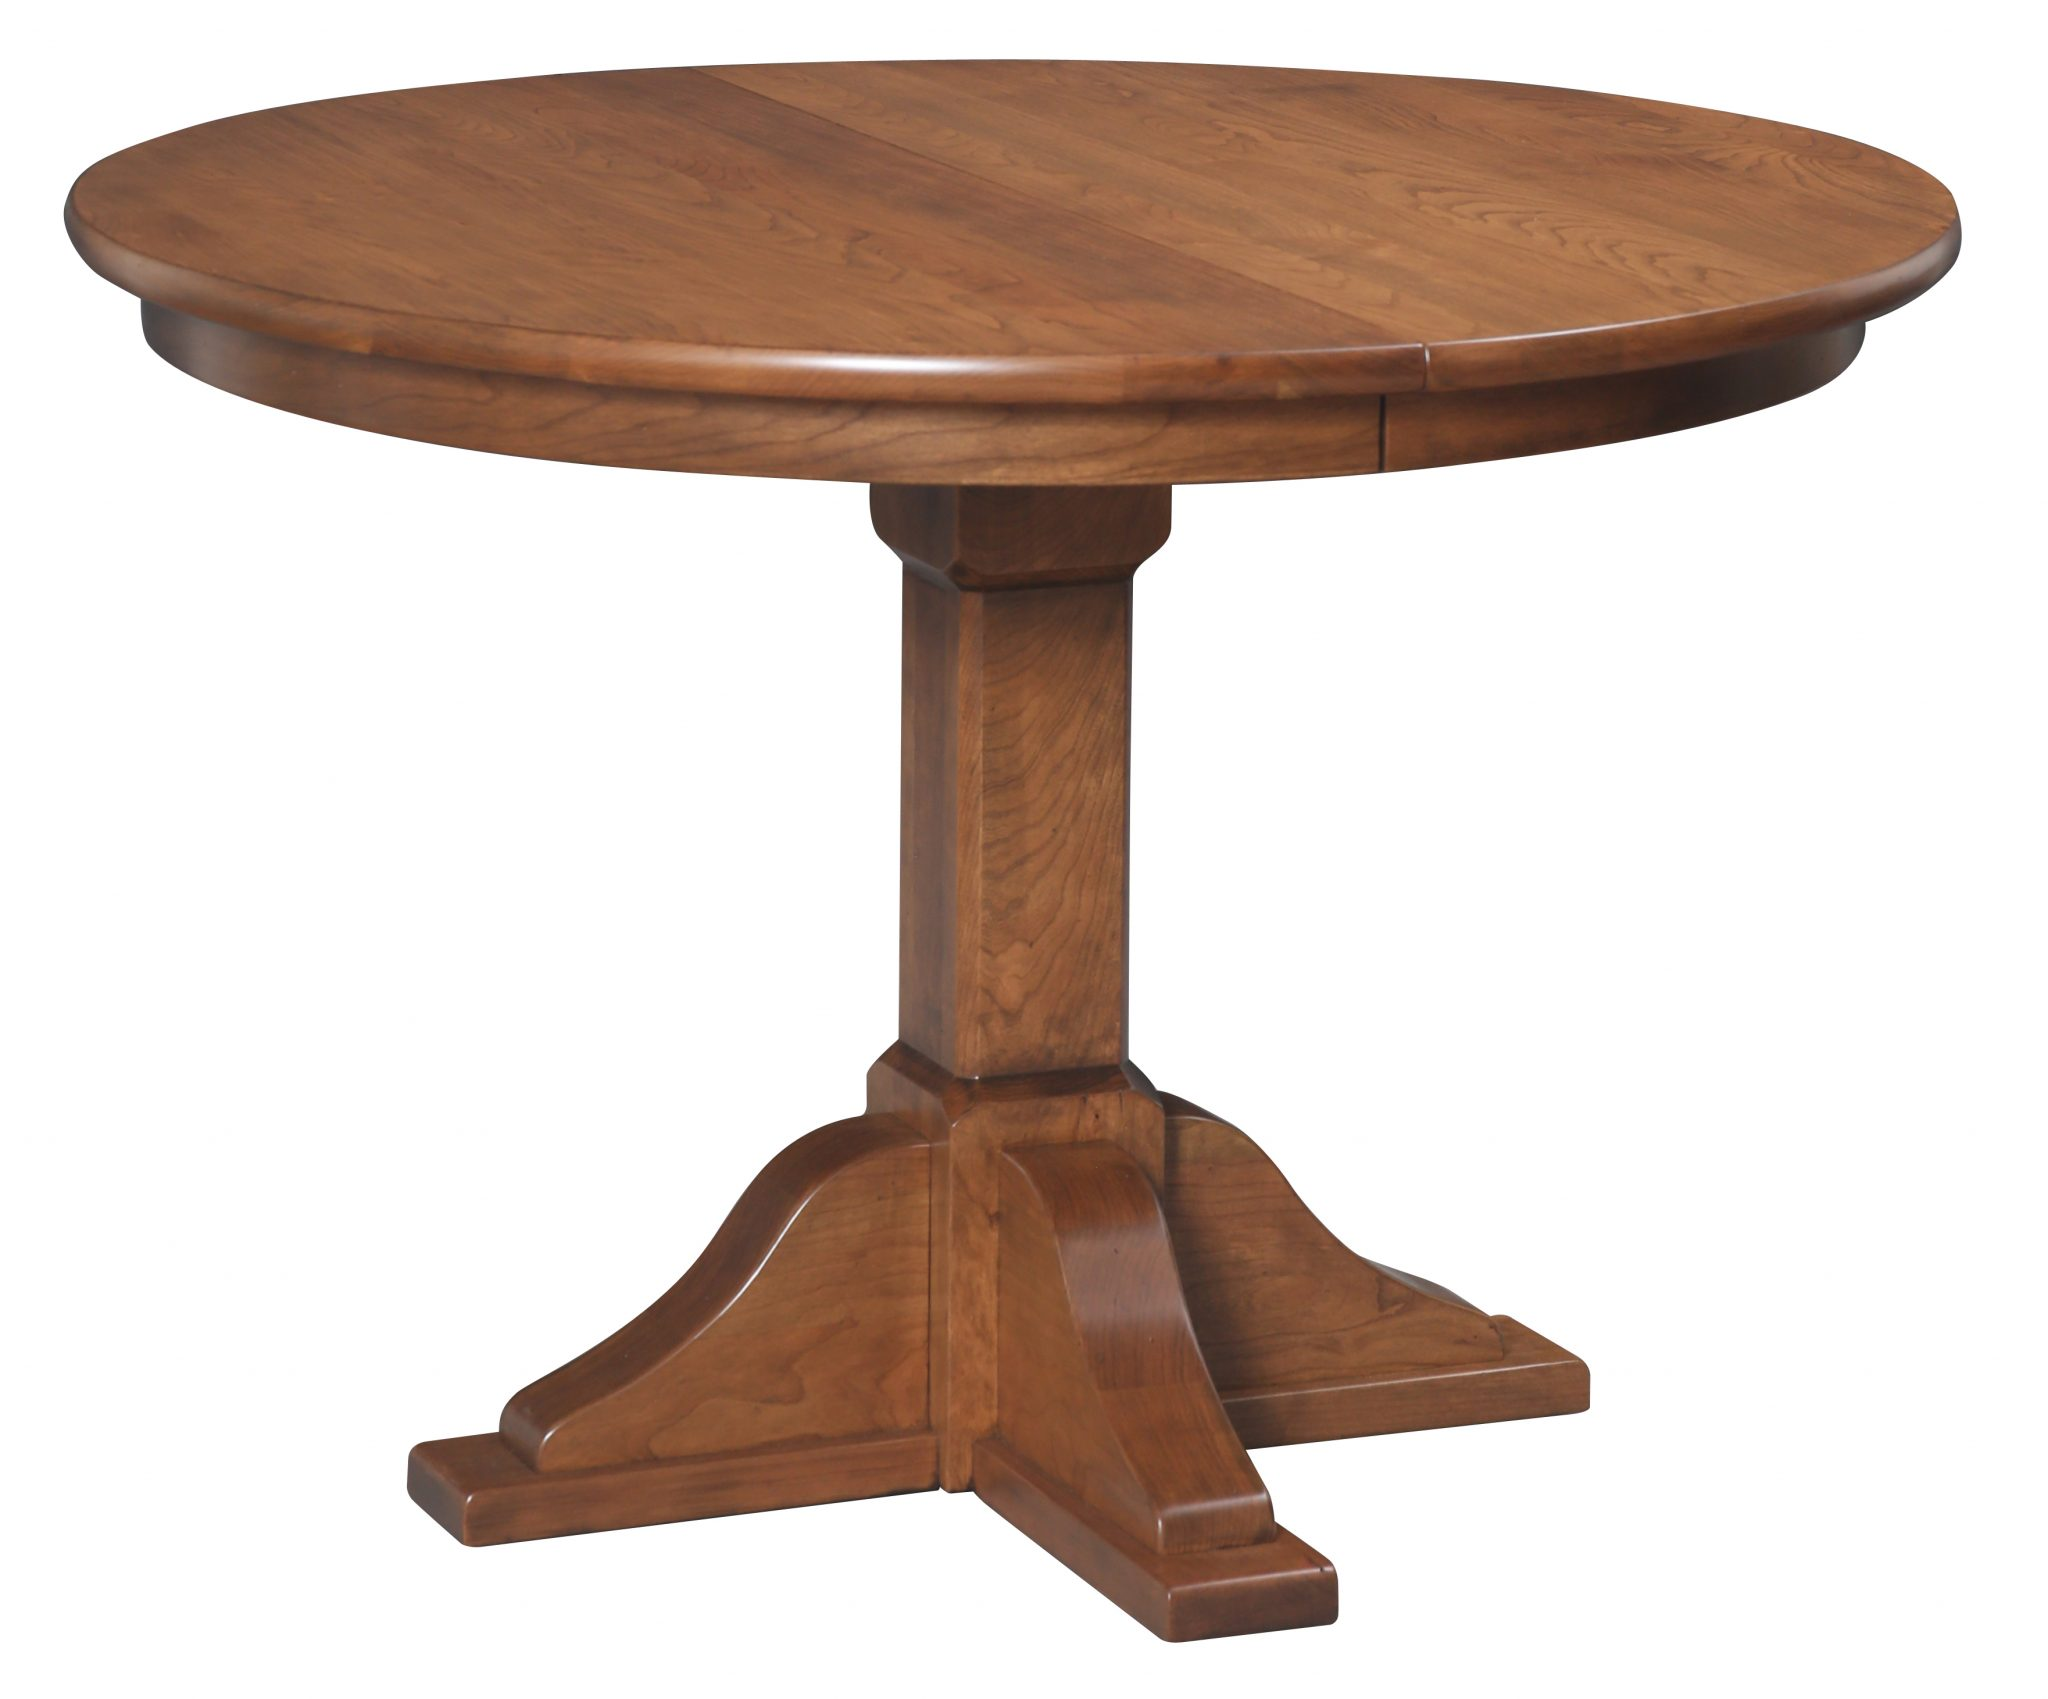 Virginia City Table Image